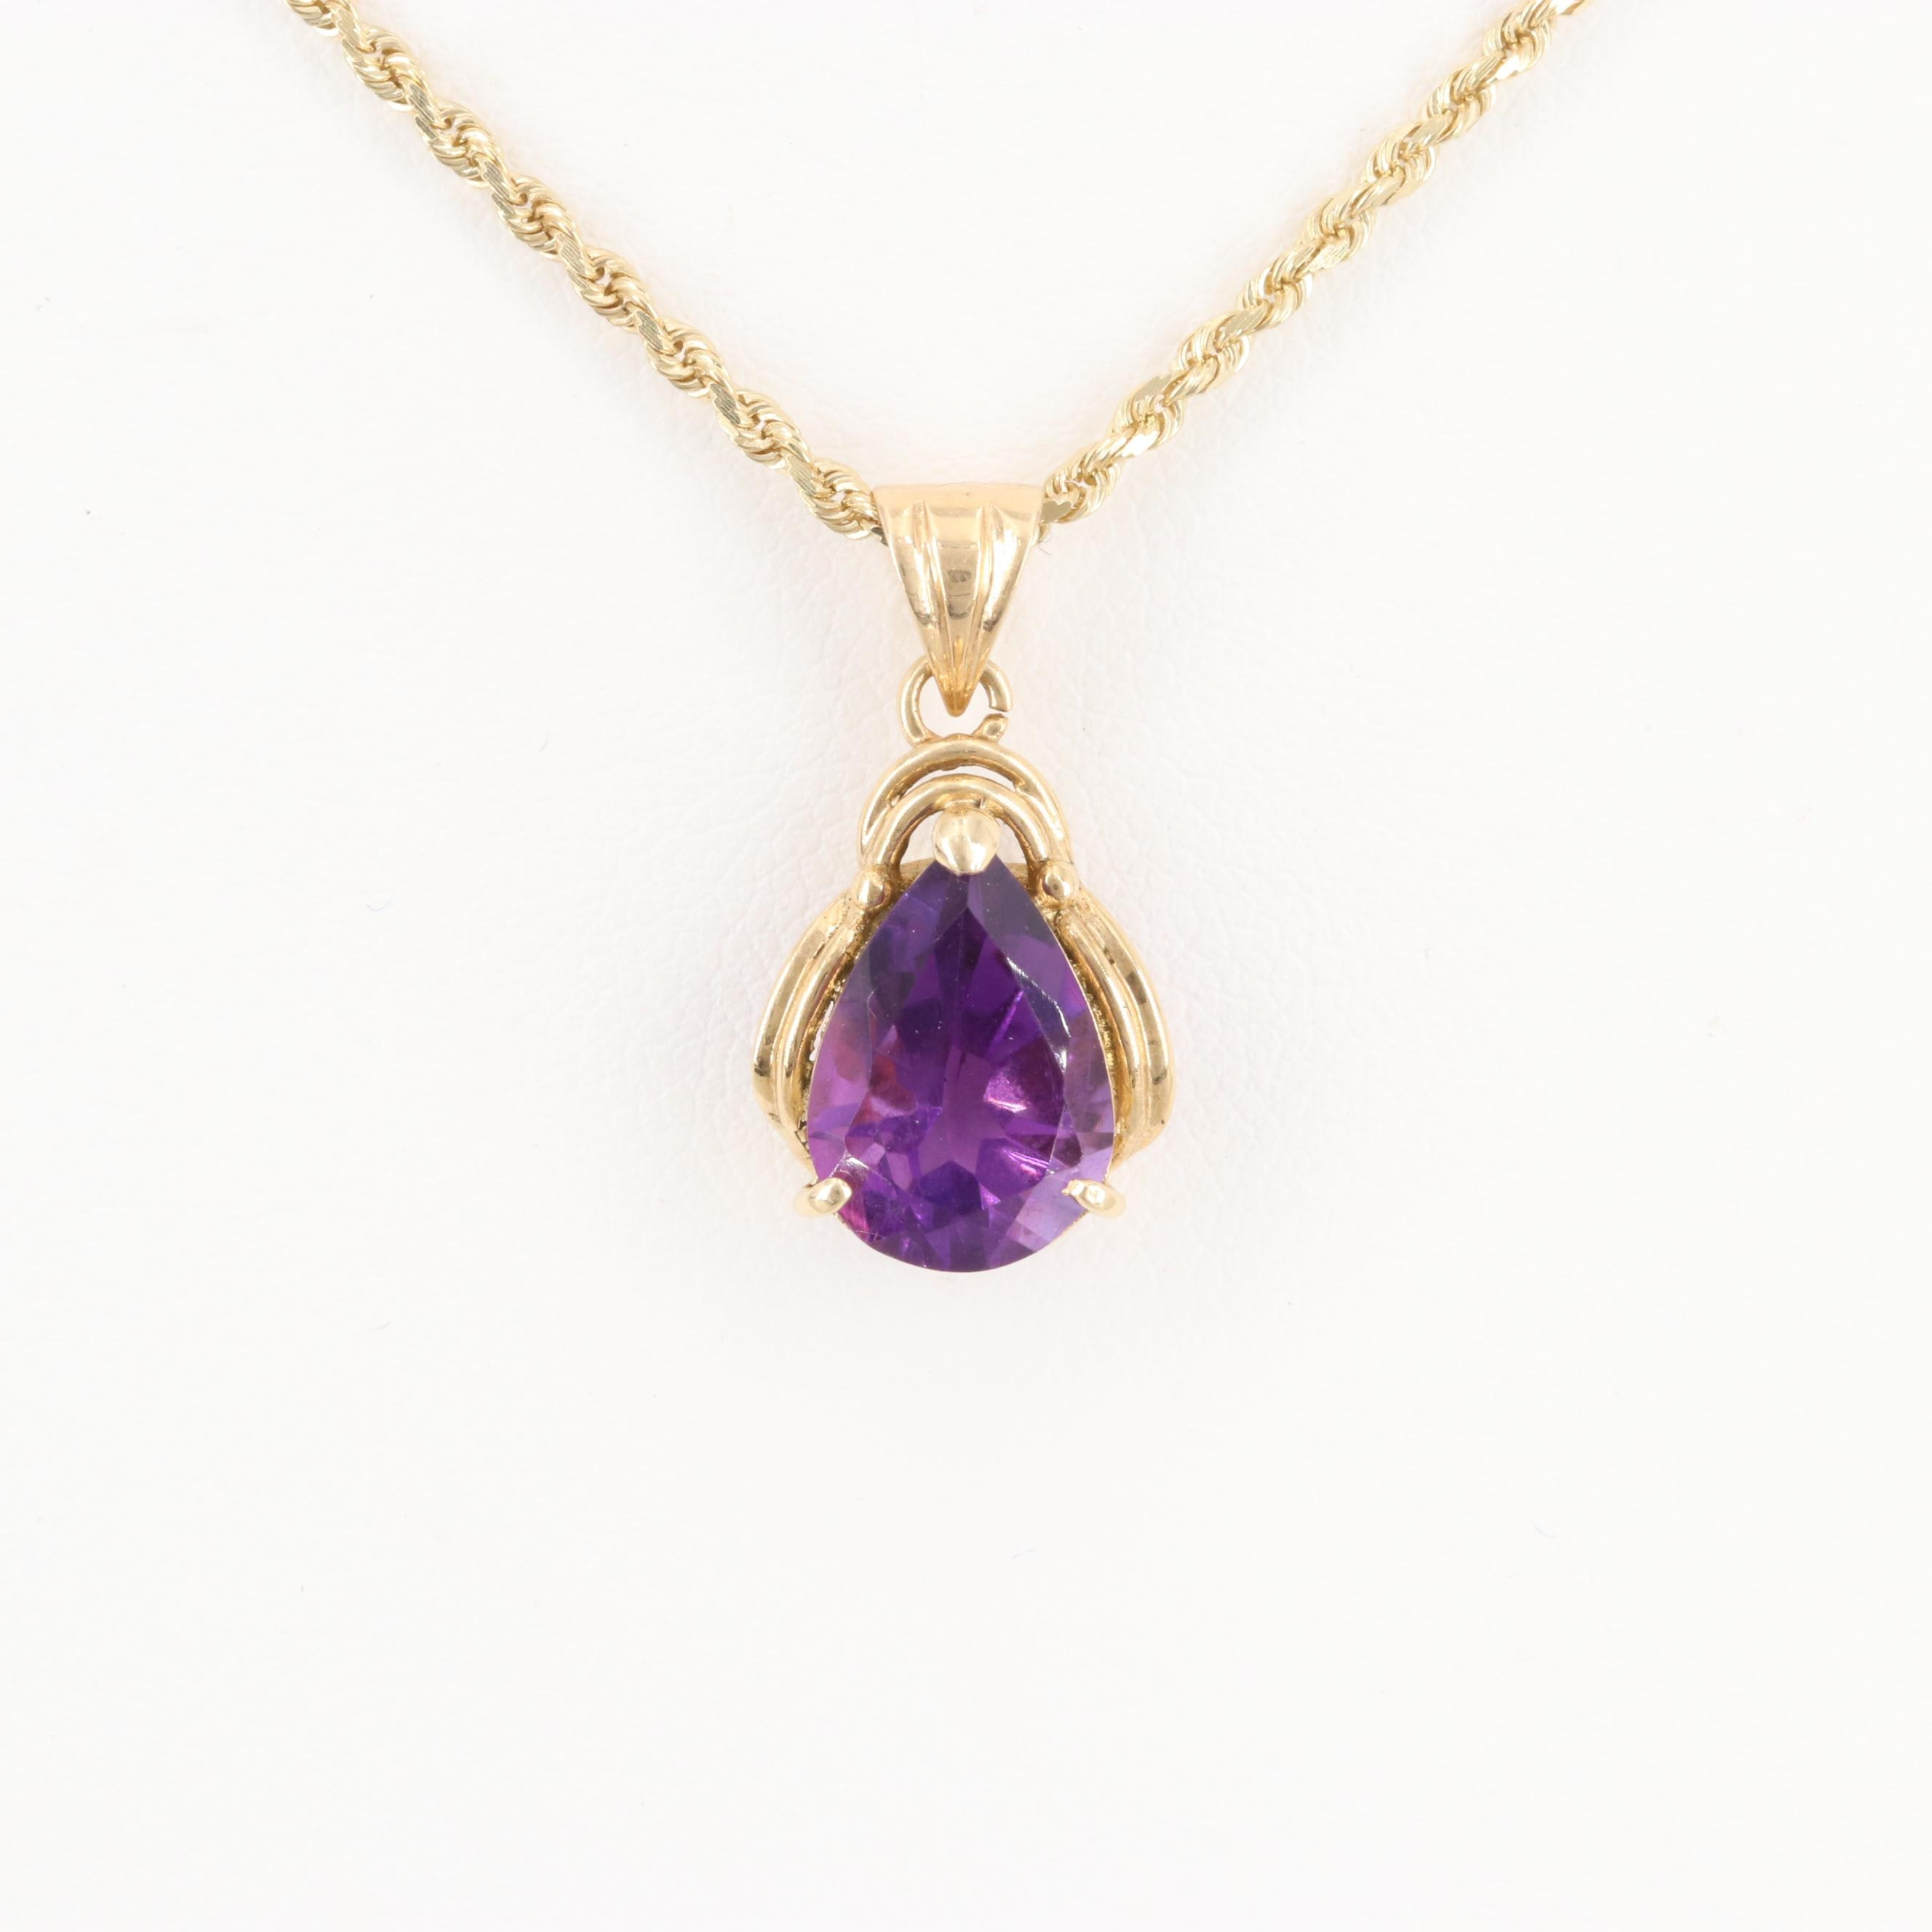 14K Yellow Gold Amethyst Necklace